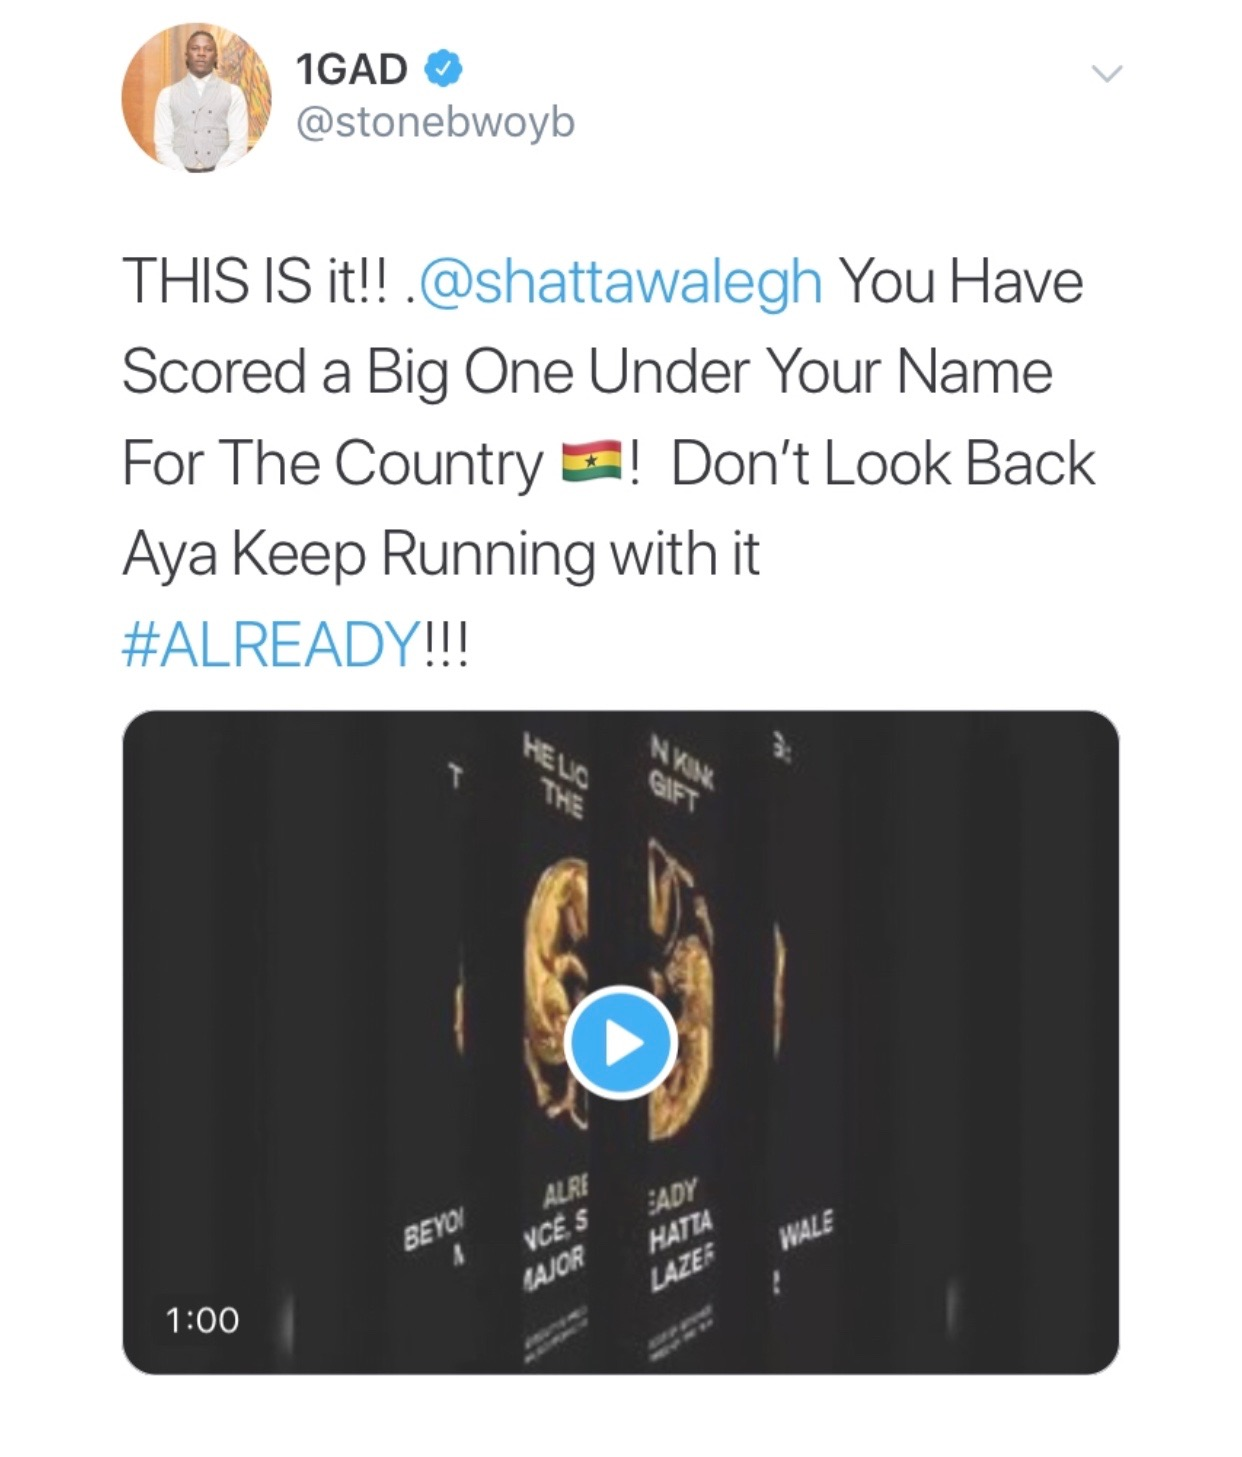 Stonebwoy's tweet to shatta wale - Stonebwoy reacts after listening to Beyoncé's Already featuring Shatta Wale